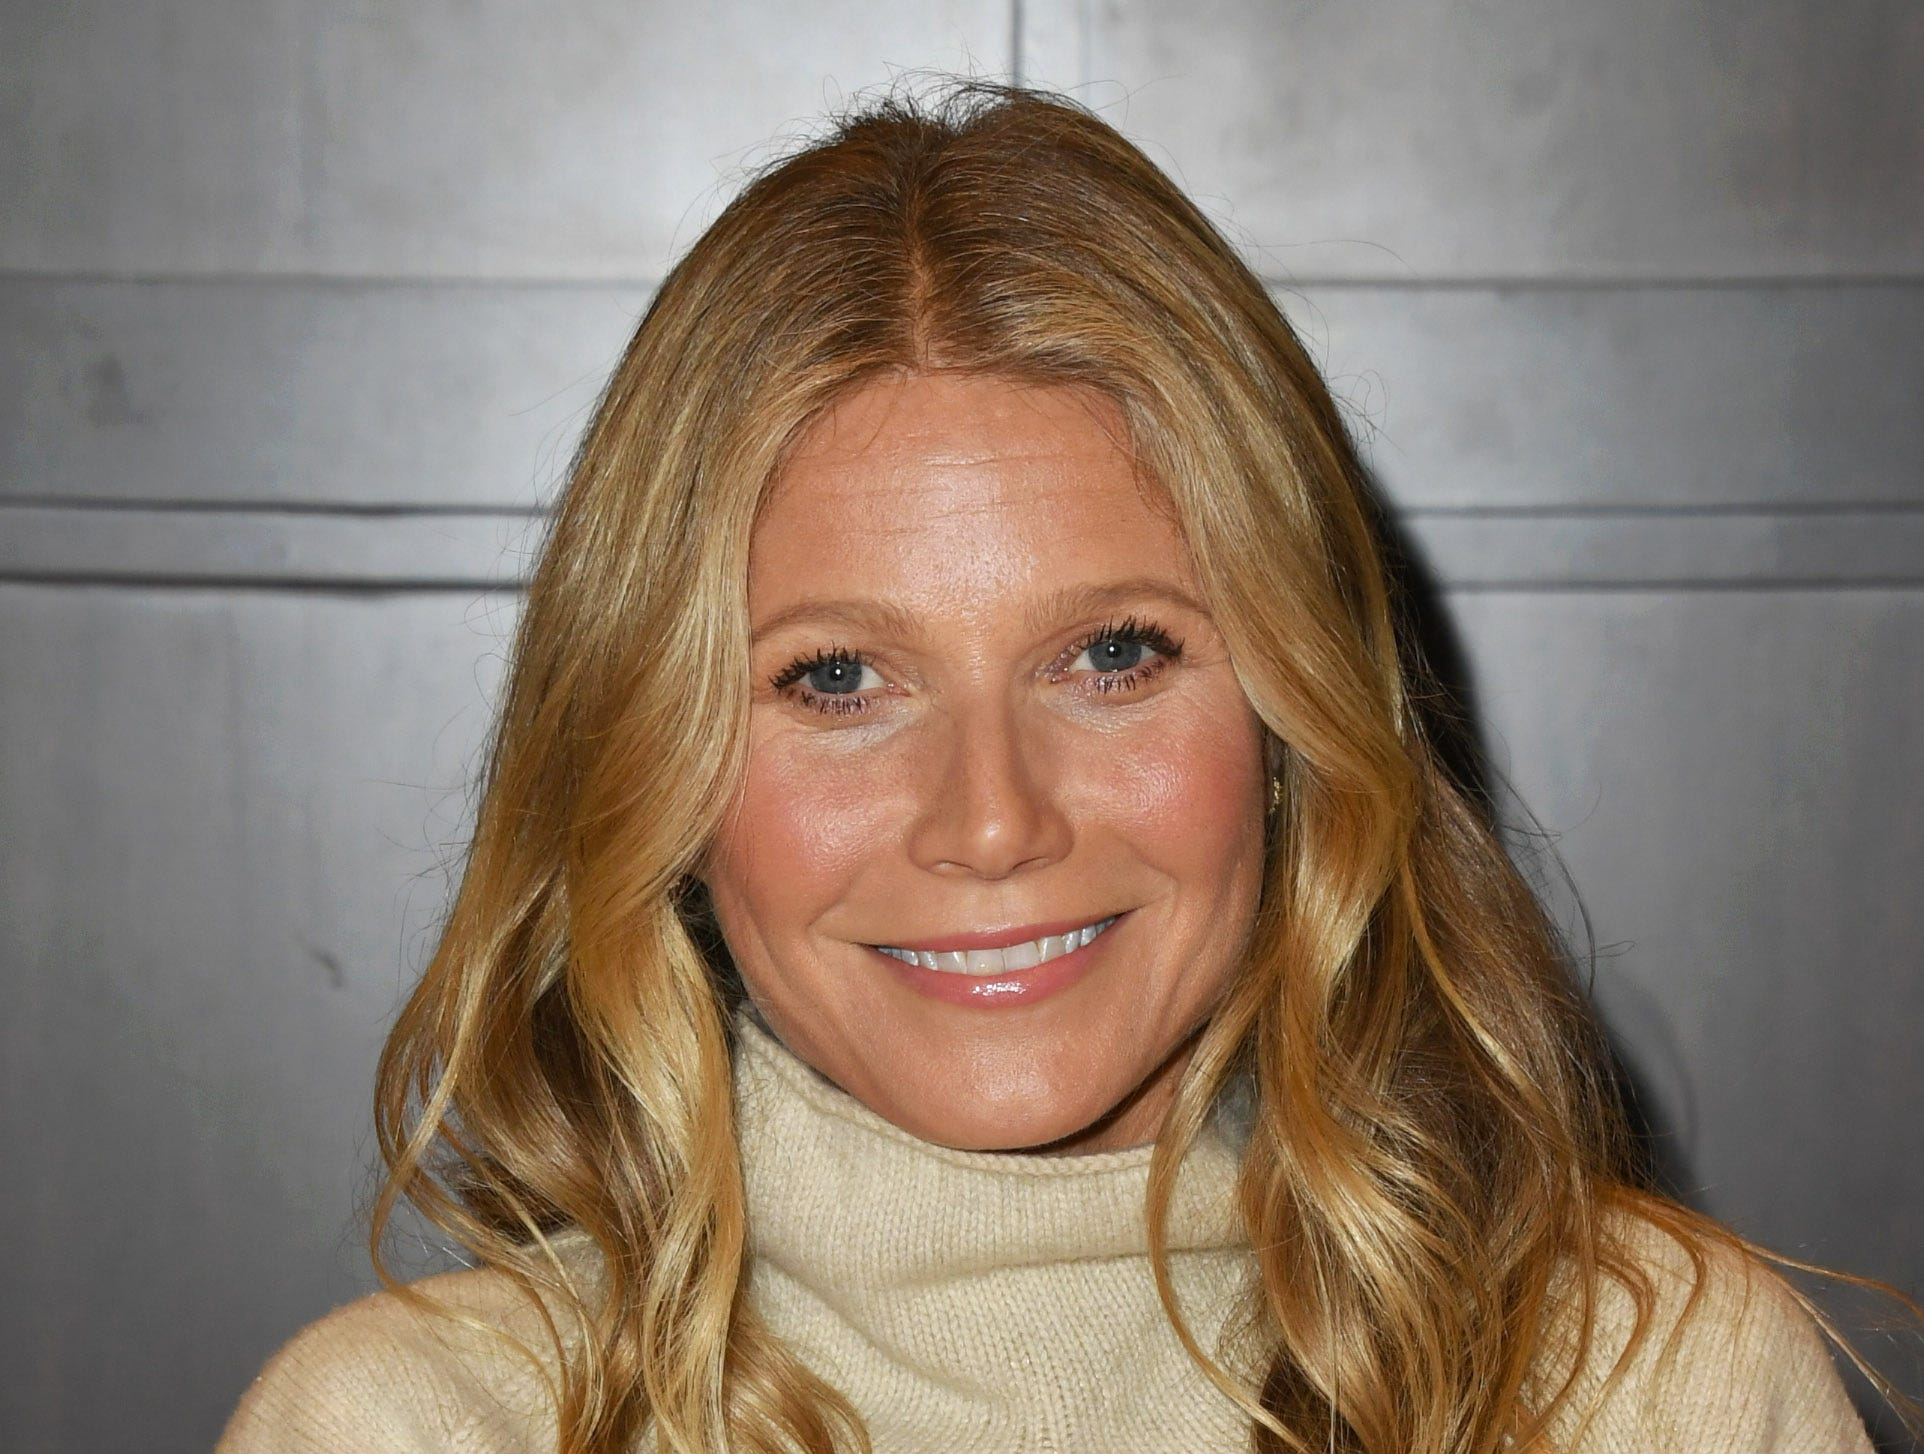 "LOS ANGELES, CALIFORNIA - JANUARY 14: Gwyneth Paltrow Signs Copies Of Her New Book ""The Clean Plate"" at Barnes & Noble at The Grove on January 14, 2019 in Los Angeles, California. (Photo by Jon Kopaloff/Getty Images) ORG XMIT: 775277367 ORIG FILE ID: 1094302864"